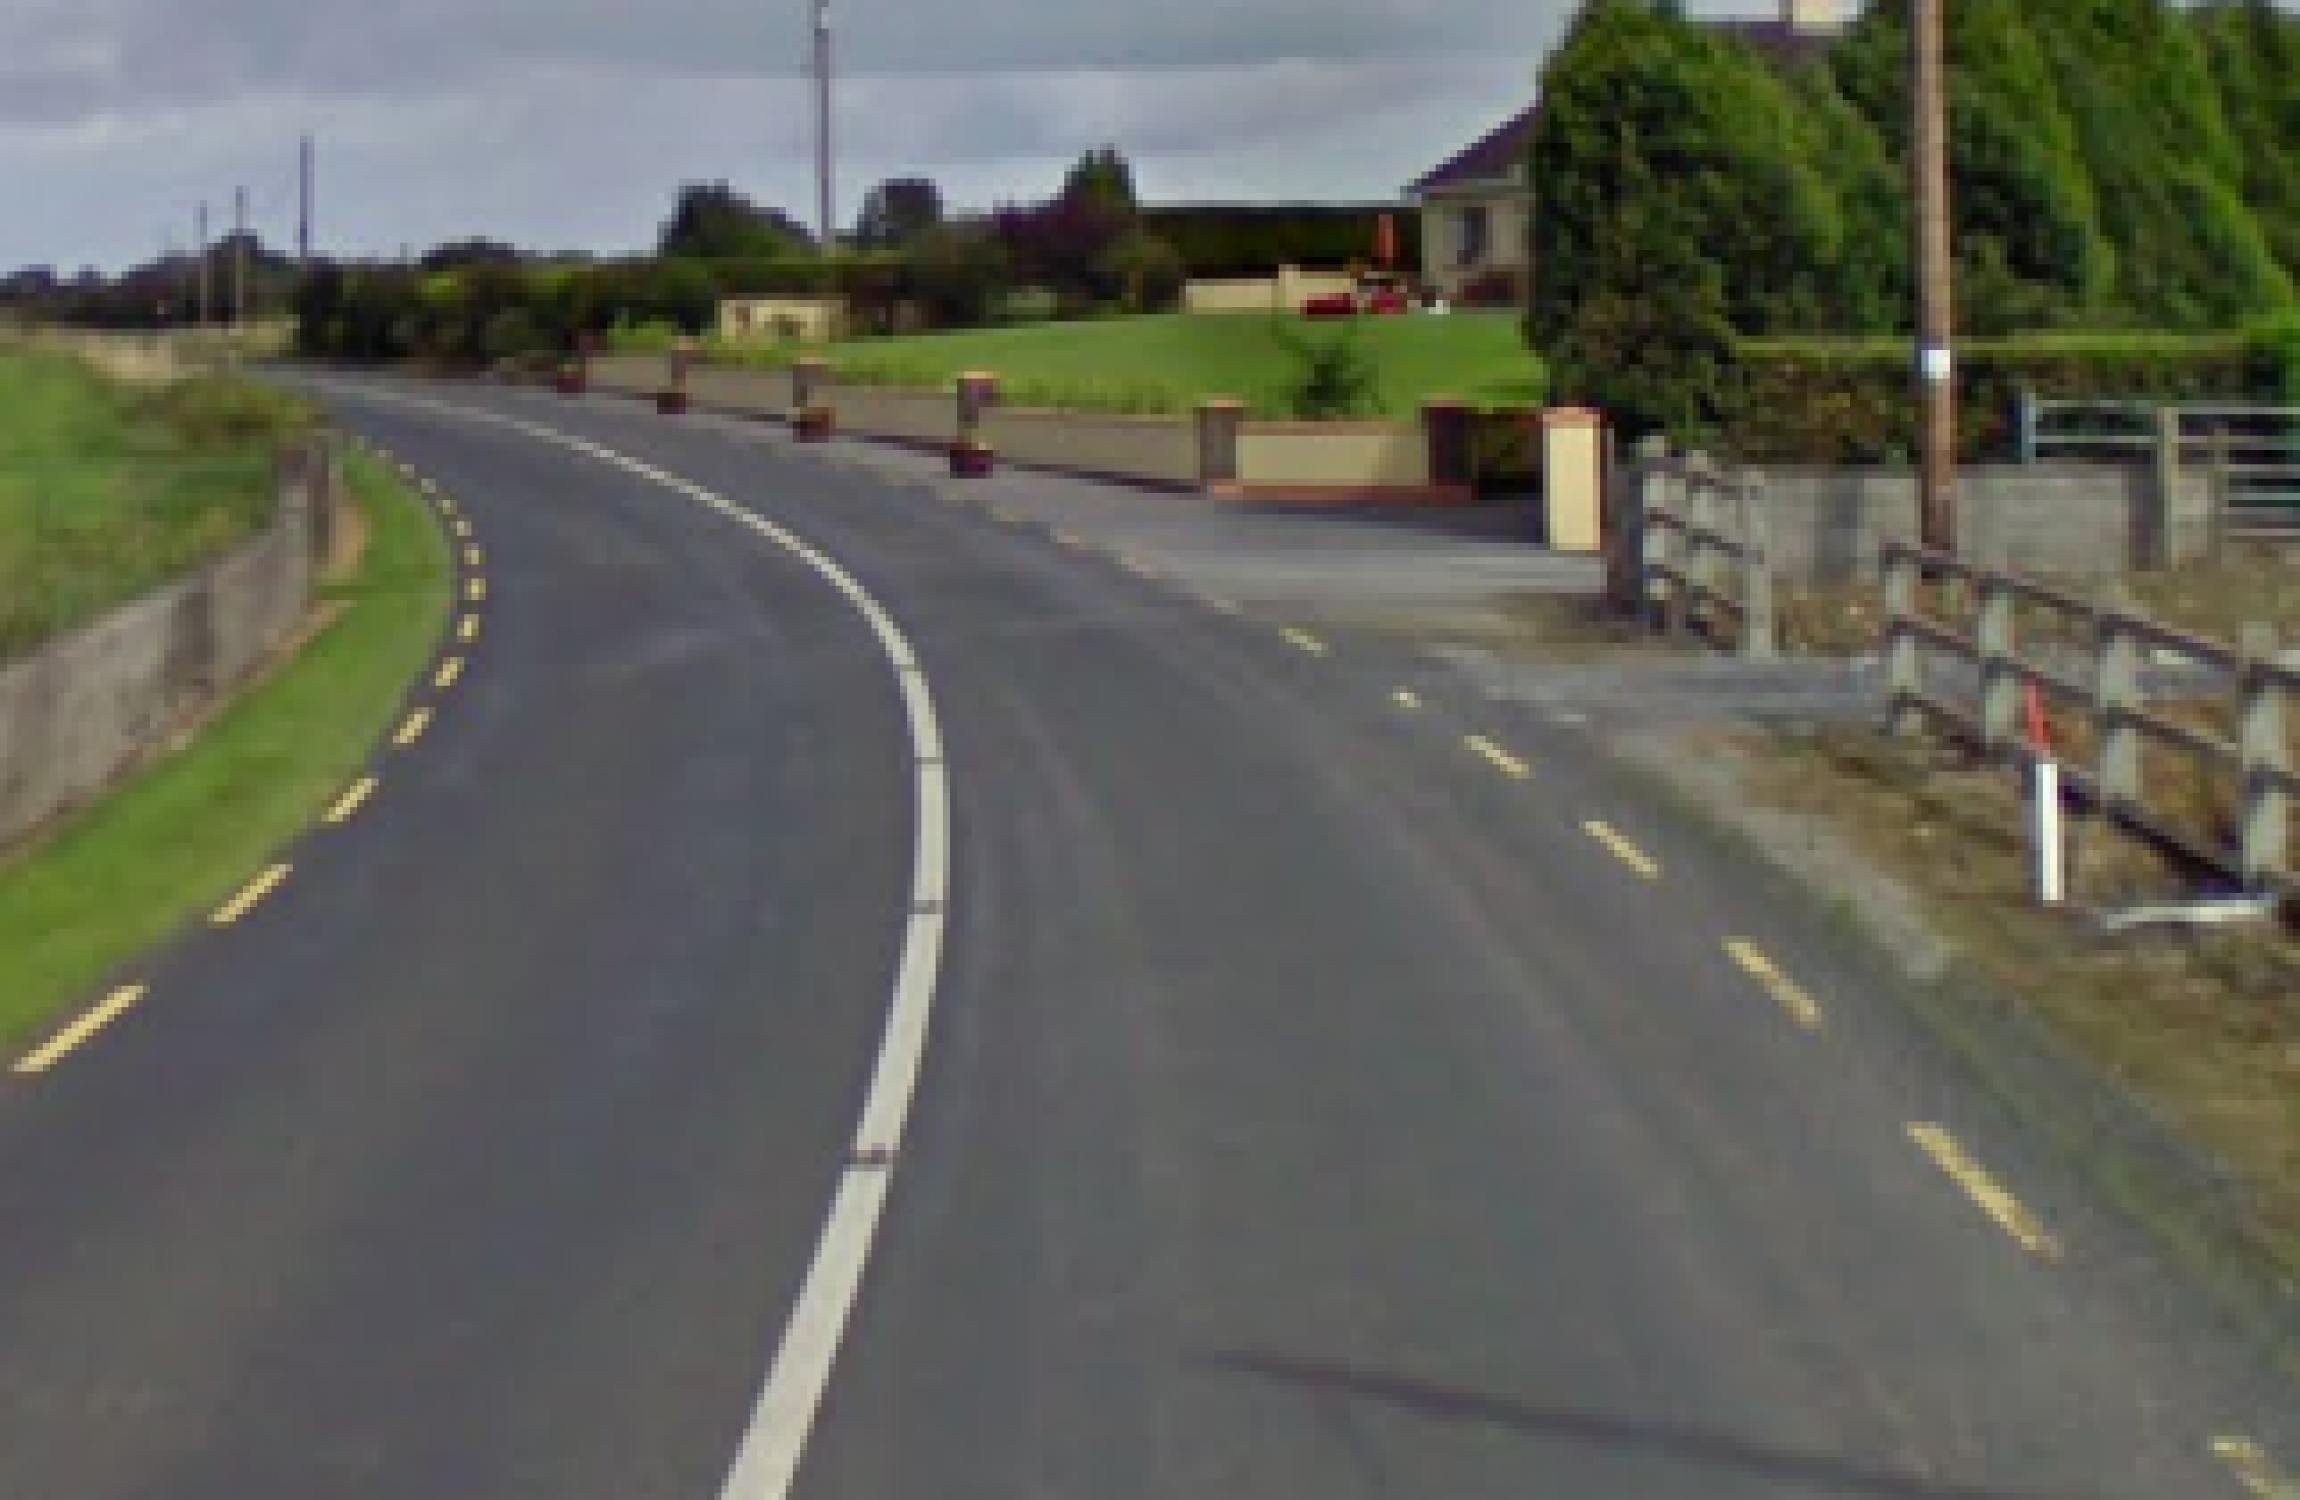 Elderly woman dies after being struck by agricultural vehicle on farm